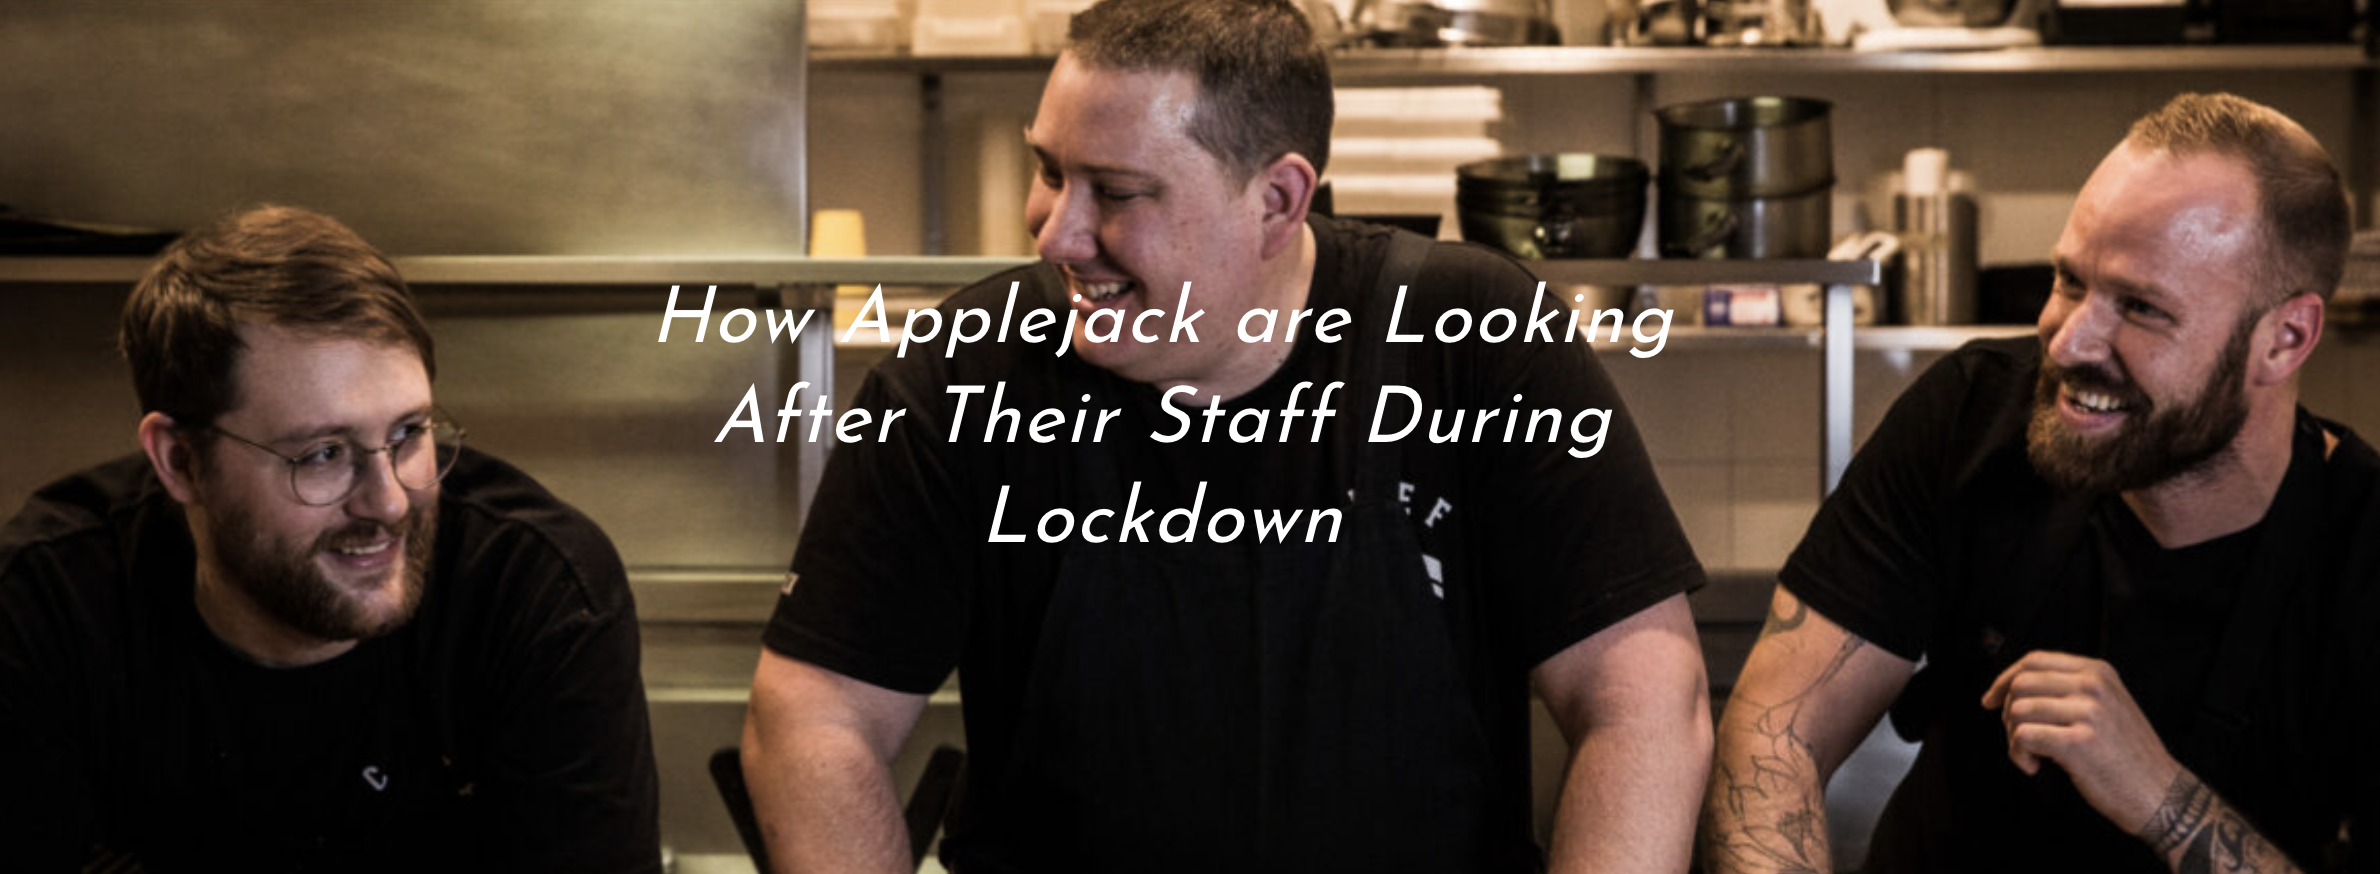 How Applejack are Looking After Their Staff During Lockdown